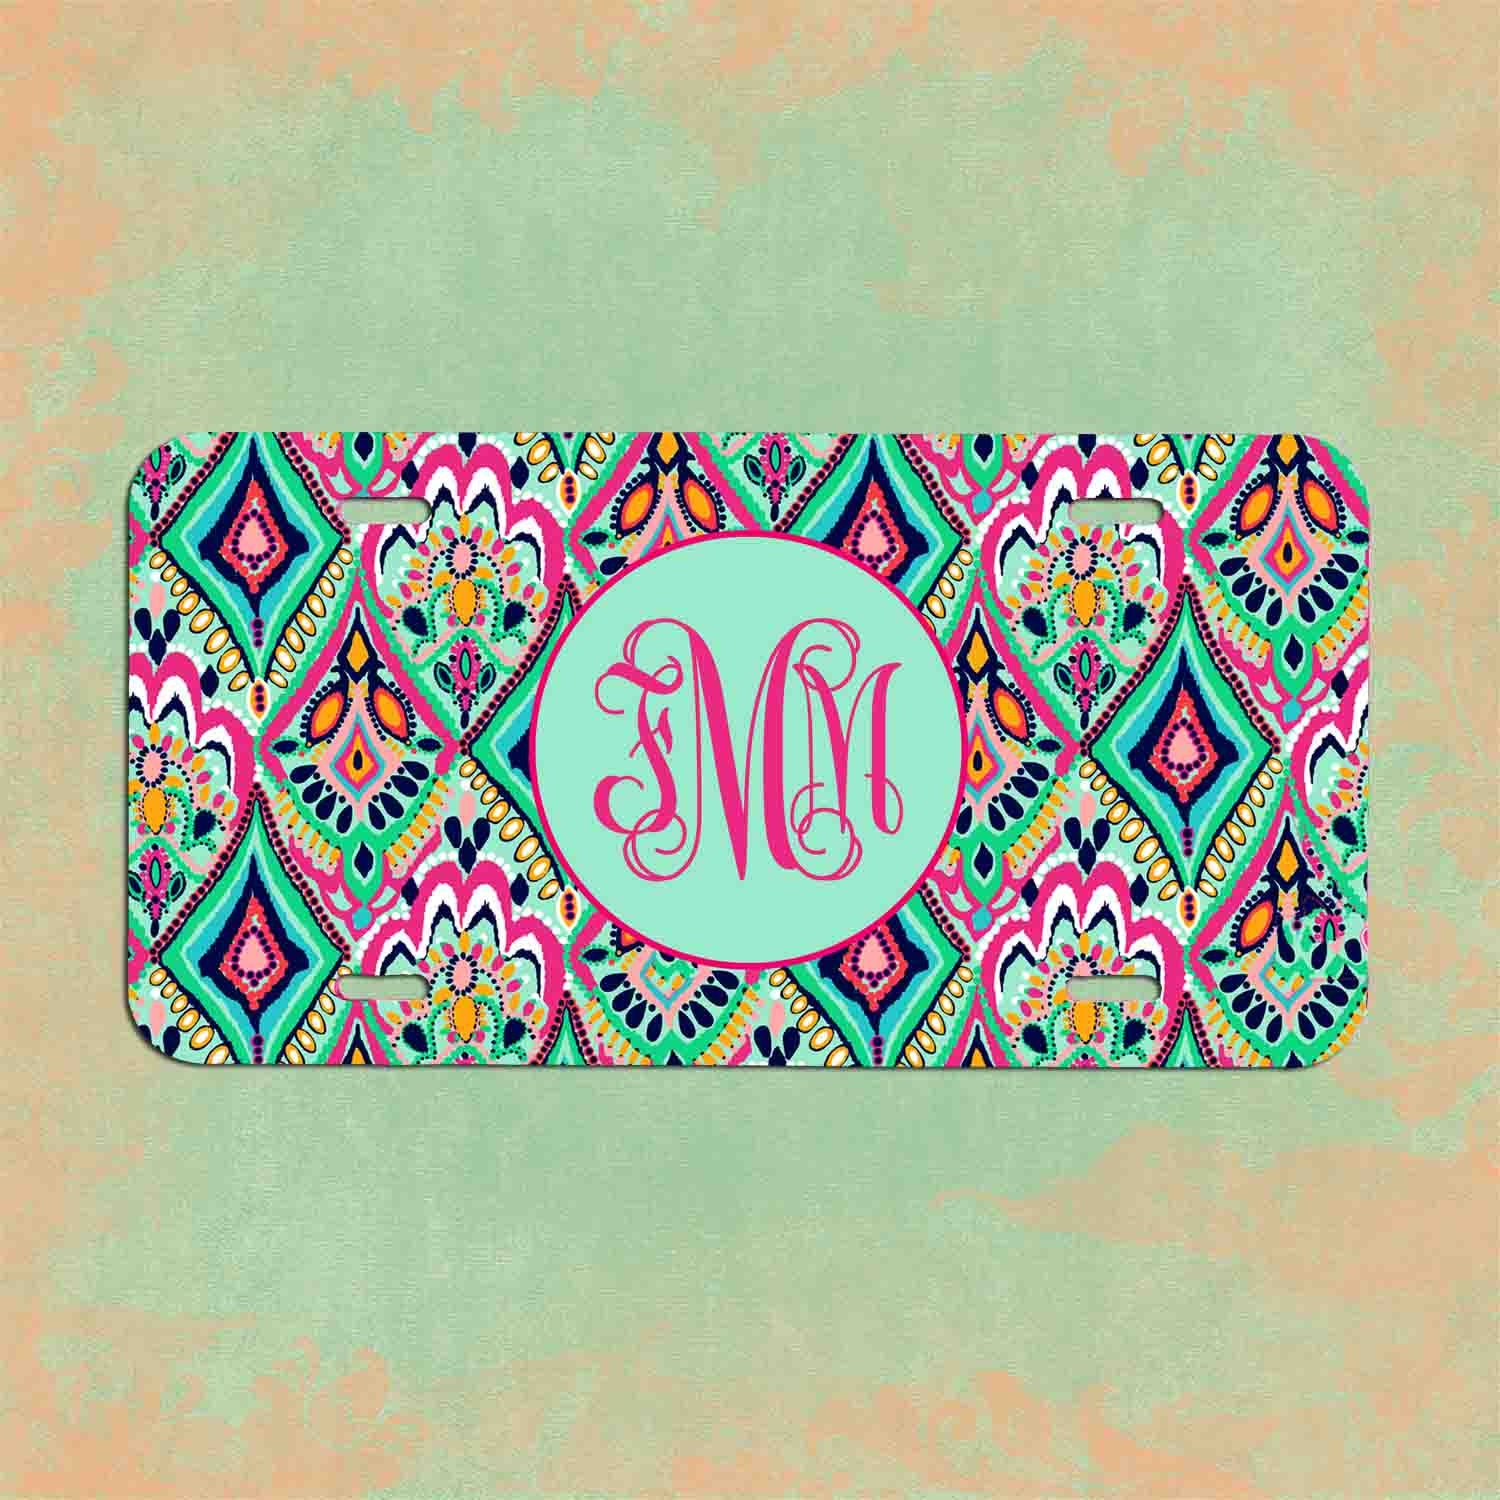 Monogrammed License Plate Lilly Pulitzer Inspired